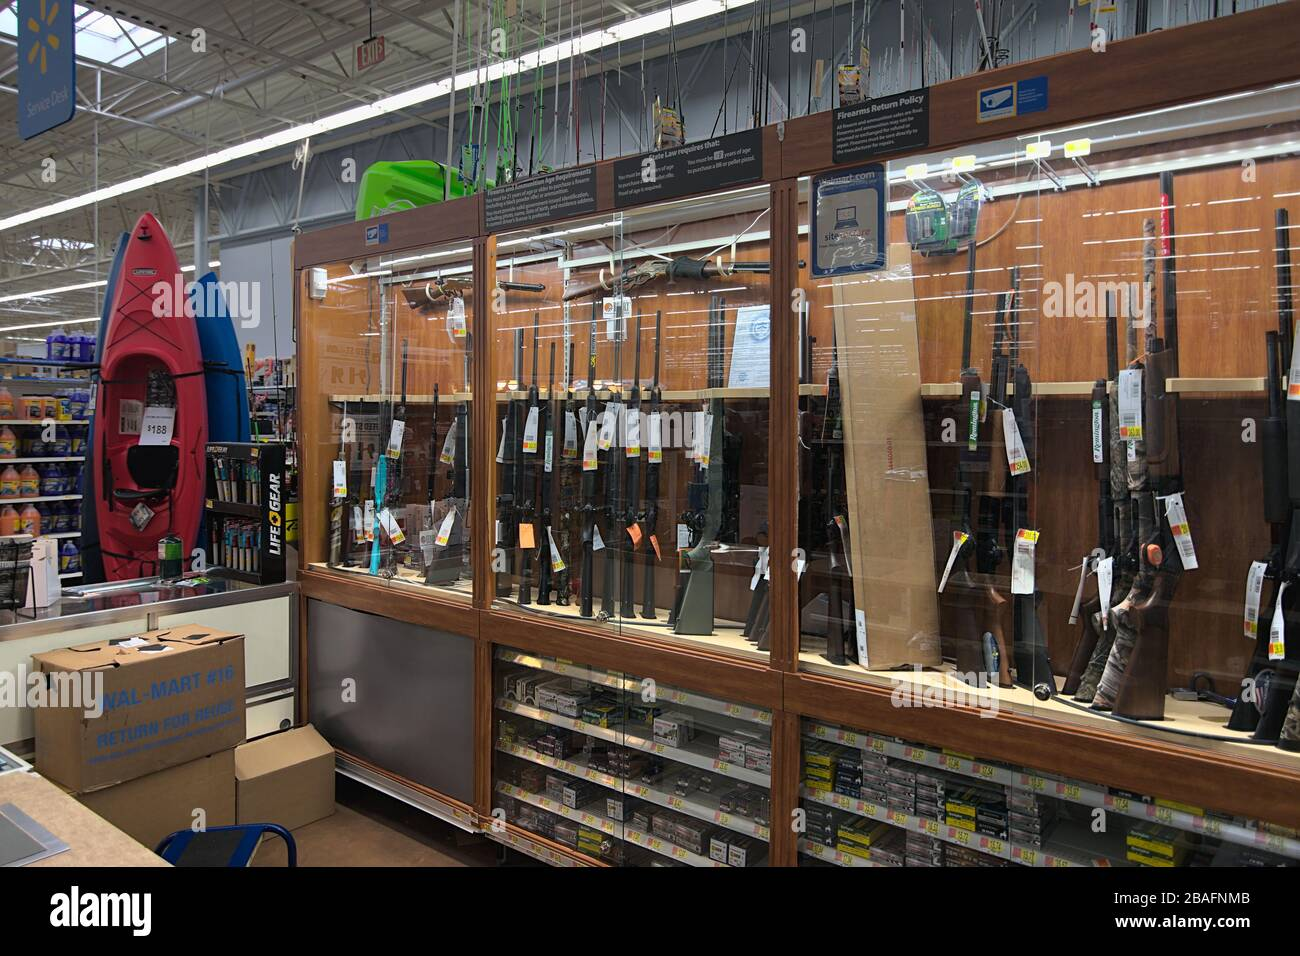 https www alamy com norton virginiaunited states of america february 29th 2020 the firearmsgun case in the sporting goods department at a walmart in virginia image350700235 html